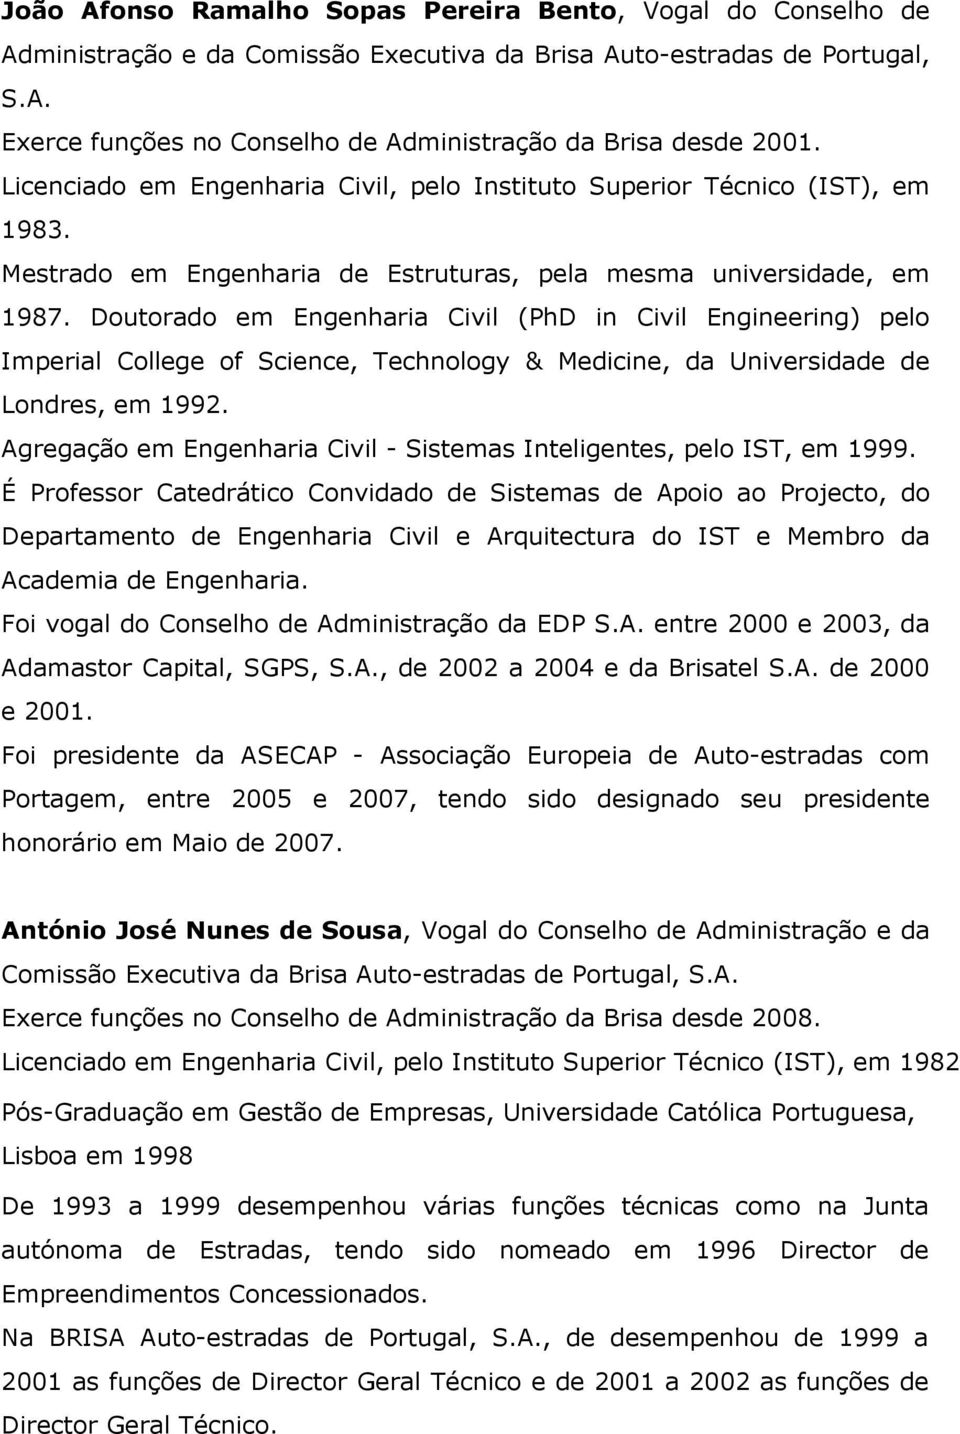 Doutorado em Engenharia Civil (PhD in Civil Engineering) pelo Imperial College of Science, Technology & Medicine, da Universidade de Londres, em 1992.